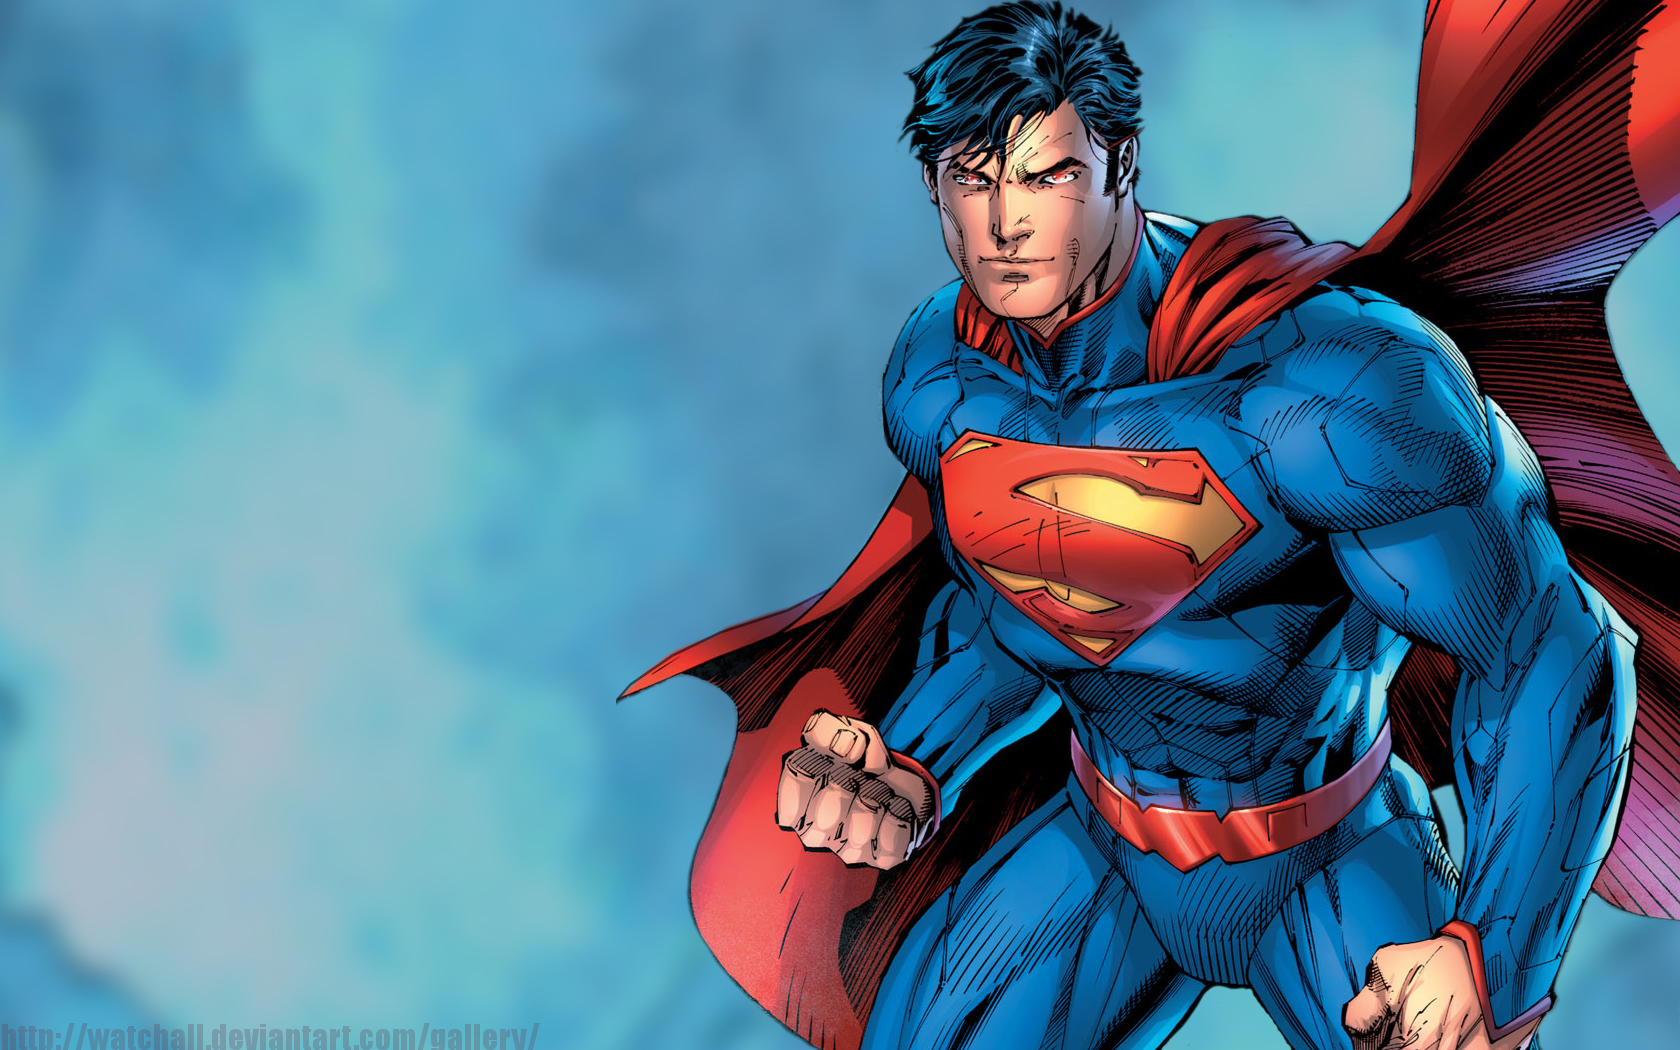 Superman by watchall